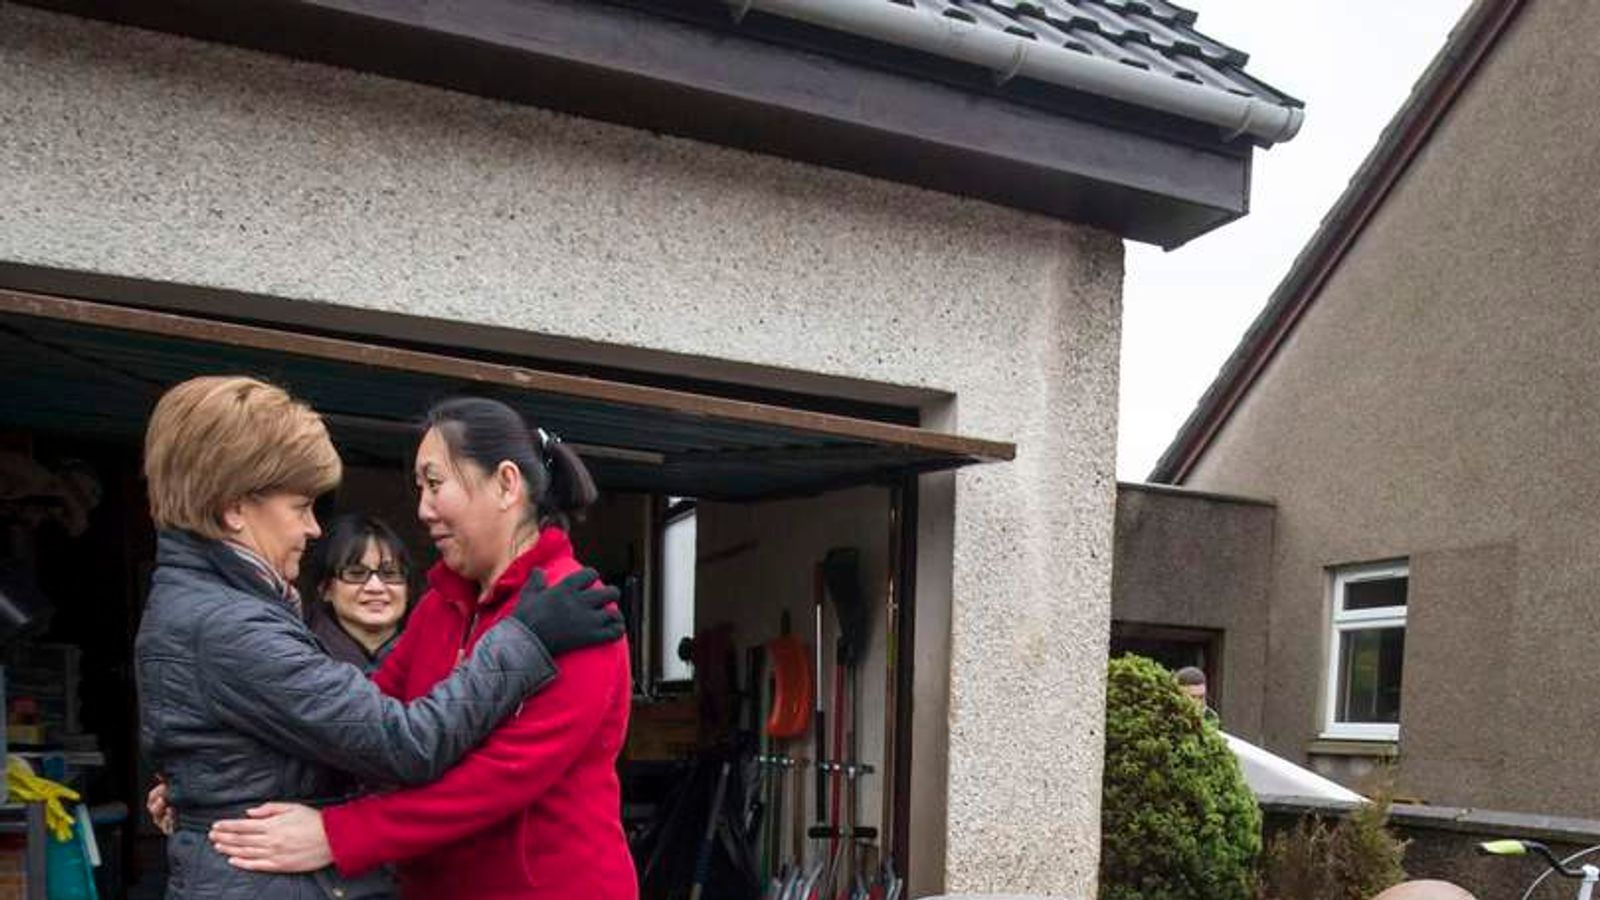 Nicola Sturgeon hugs a local resident during a visit to flood-hit Port Elphinstone